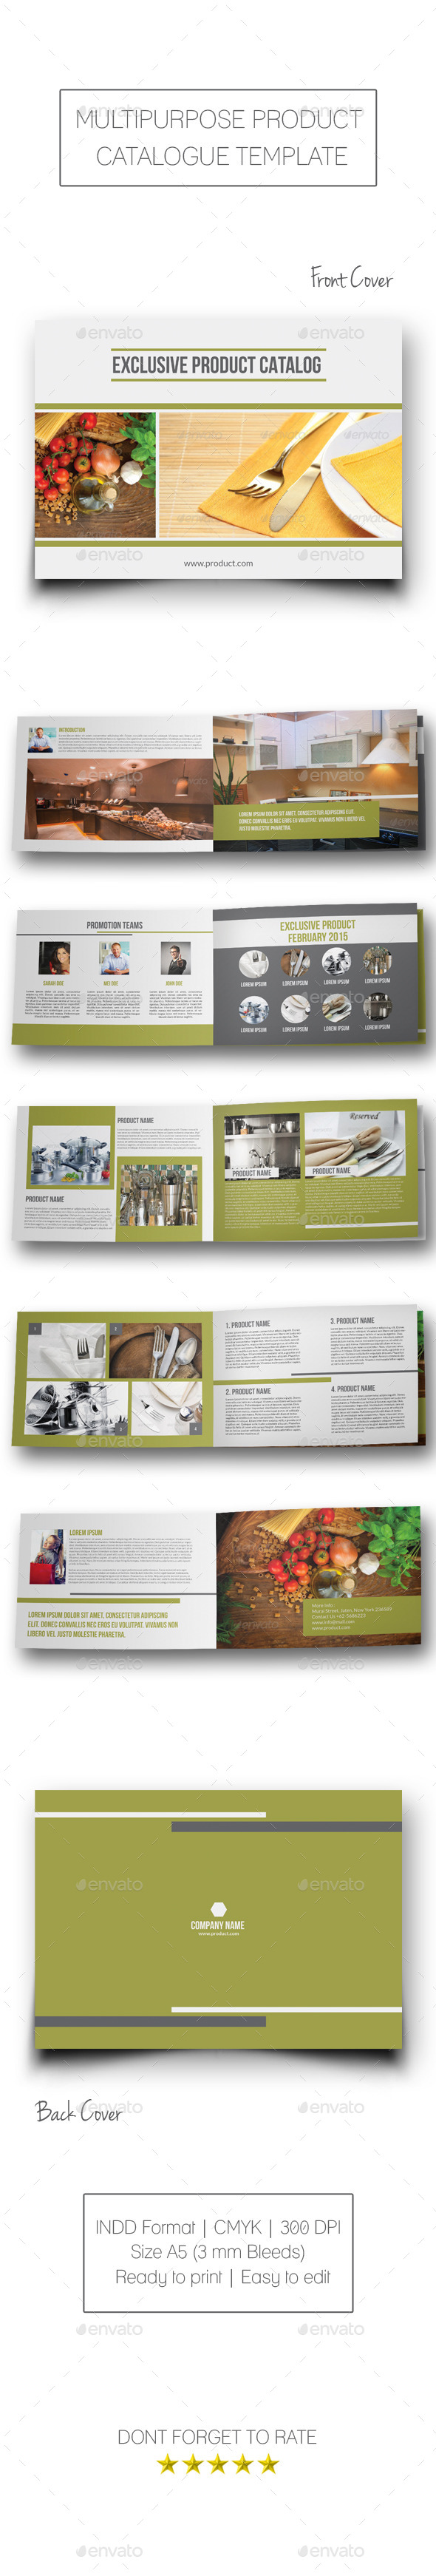 Multipurpose Product Catalogue - Catalogs Brochures